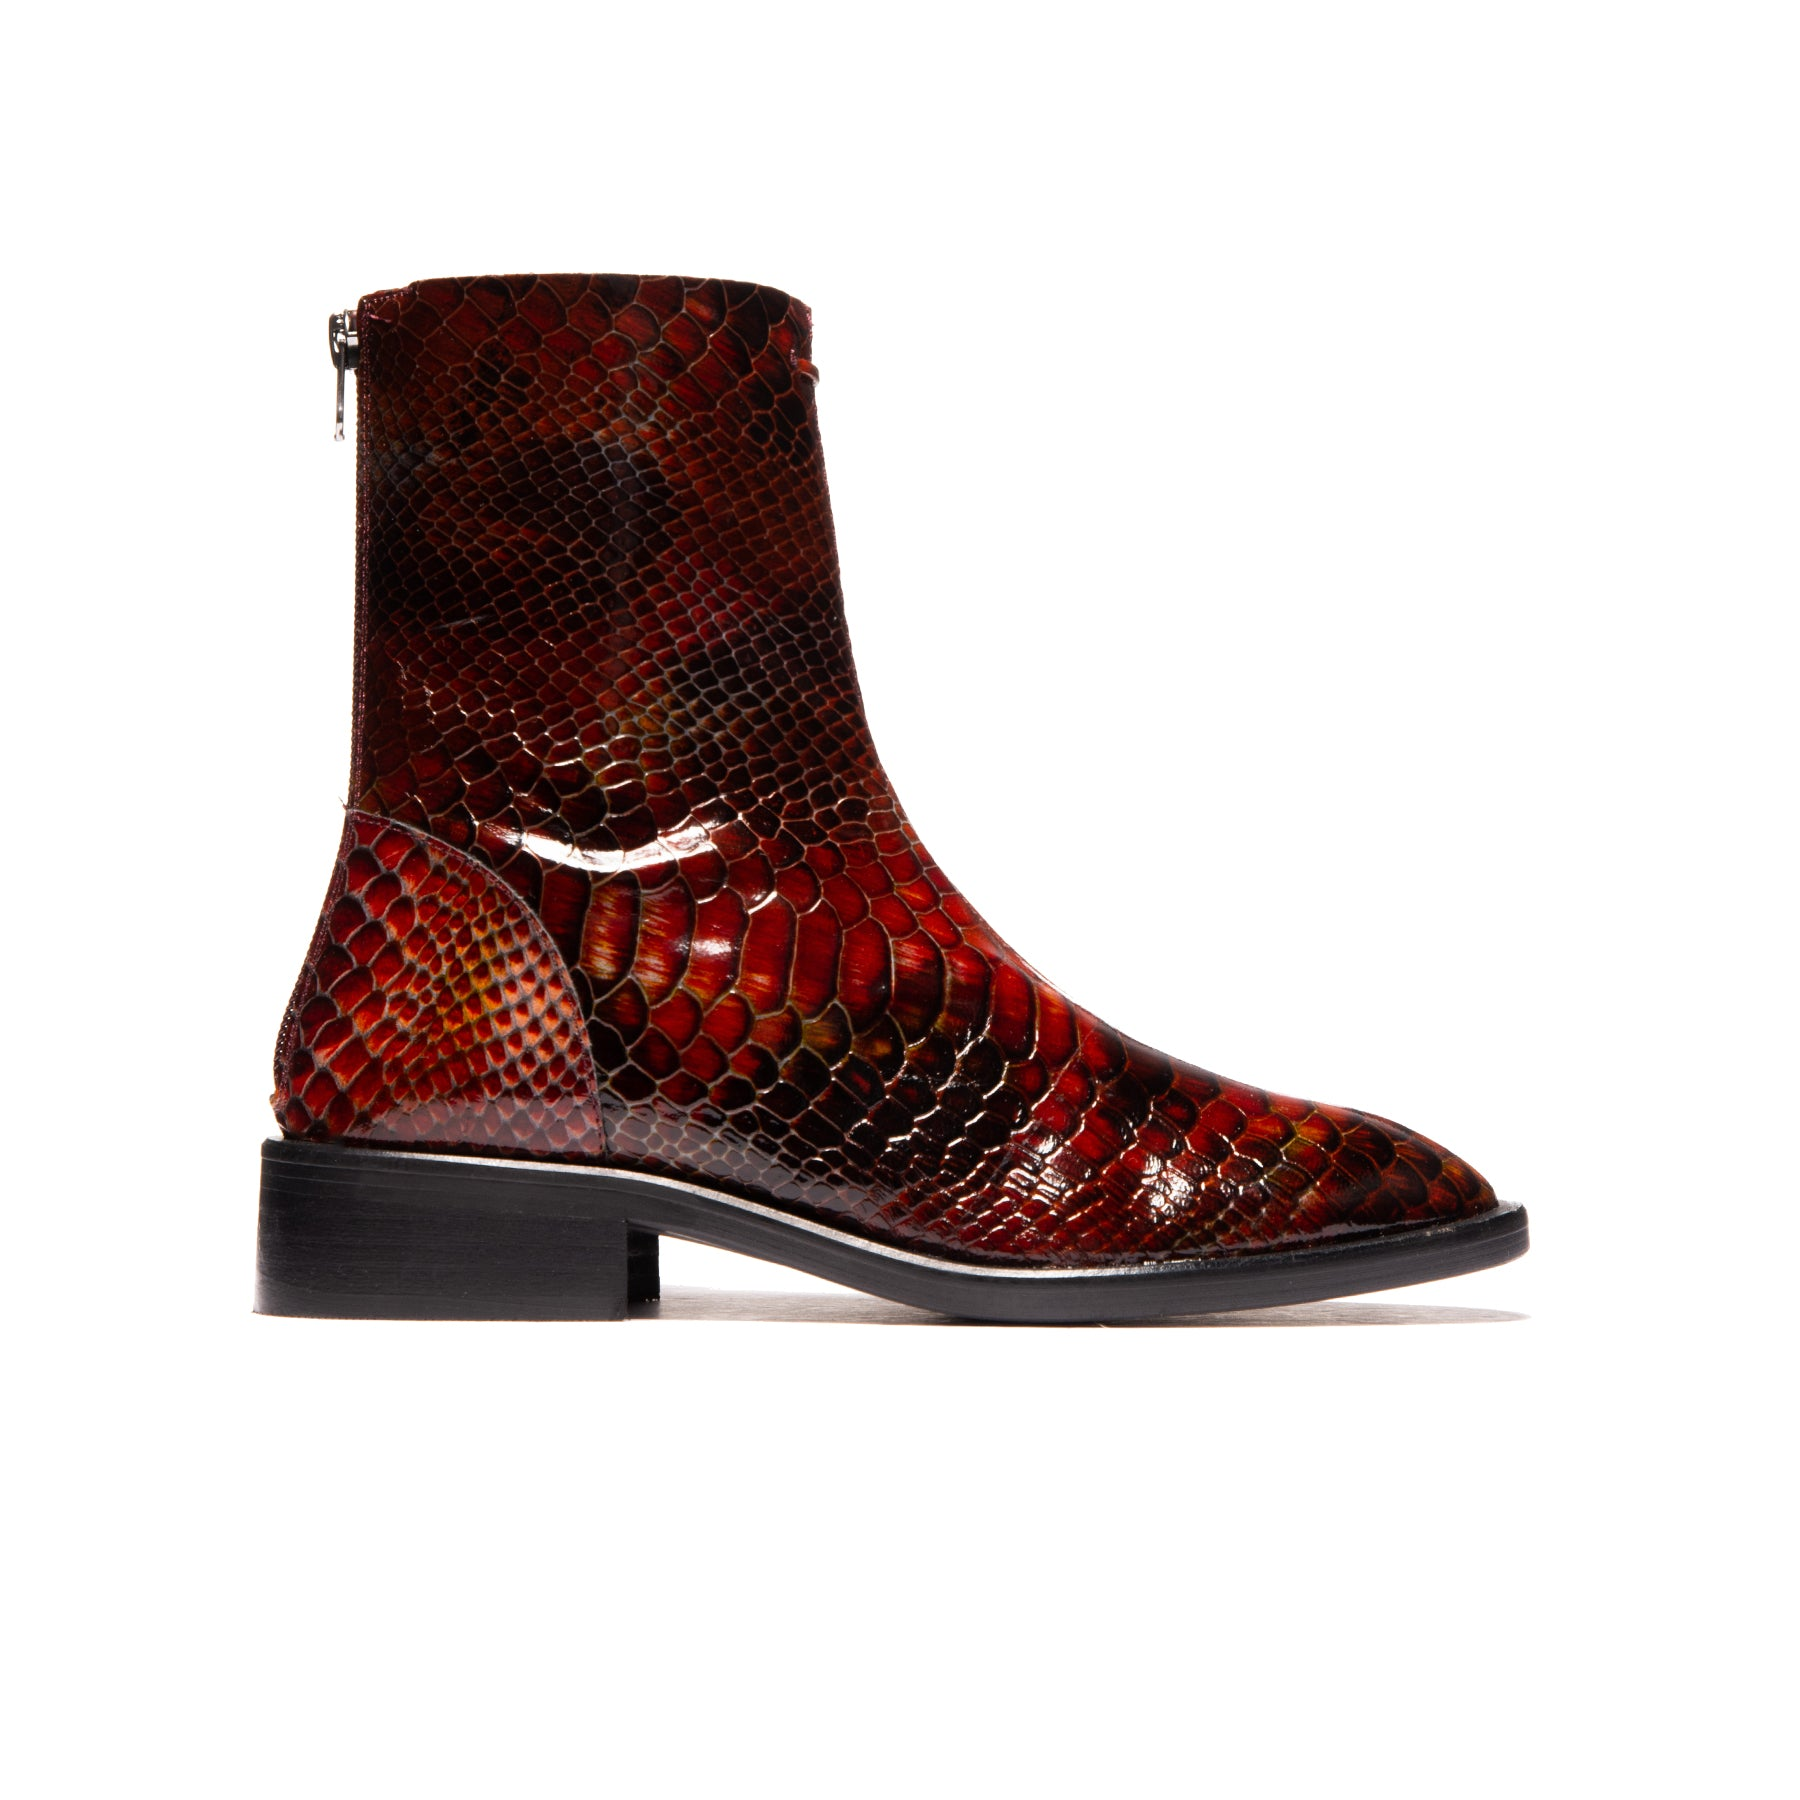 Dalton Vintage Red Snake Leather